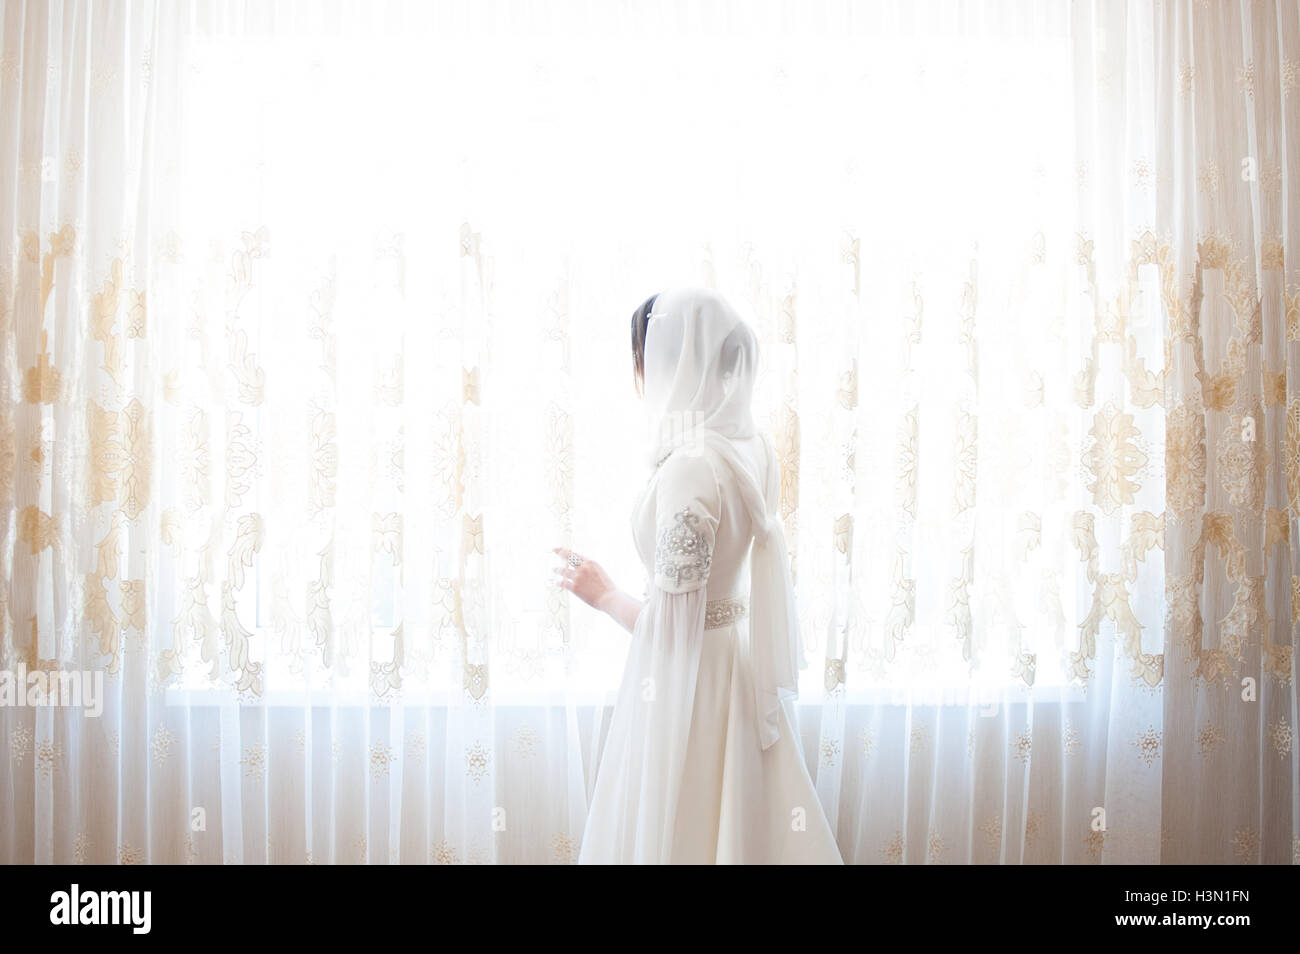 muslim woman in a white headscarf looking out the window - Stock Image